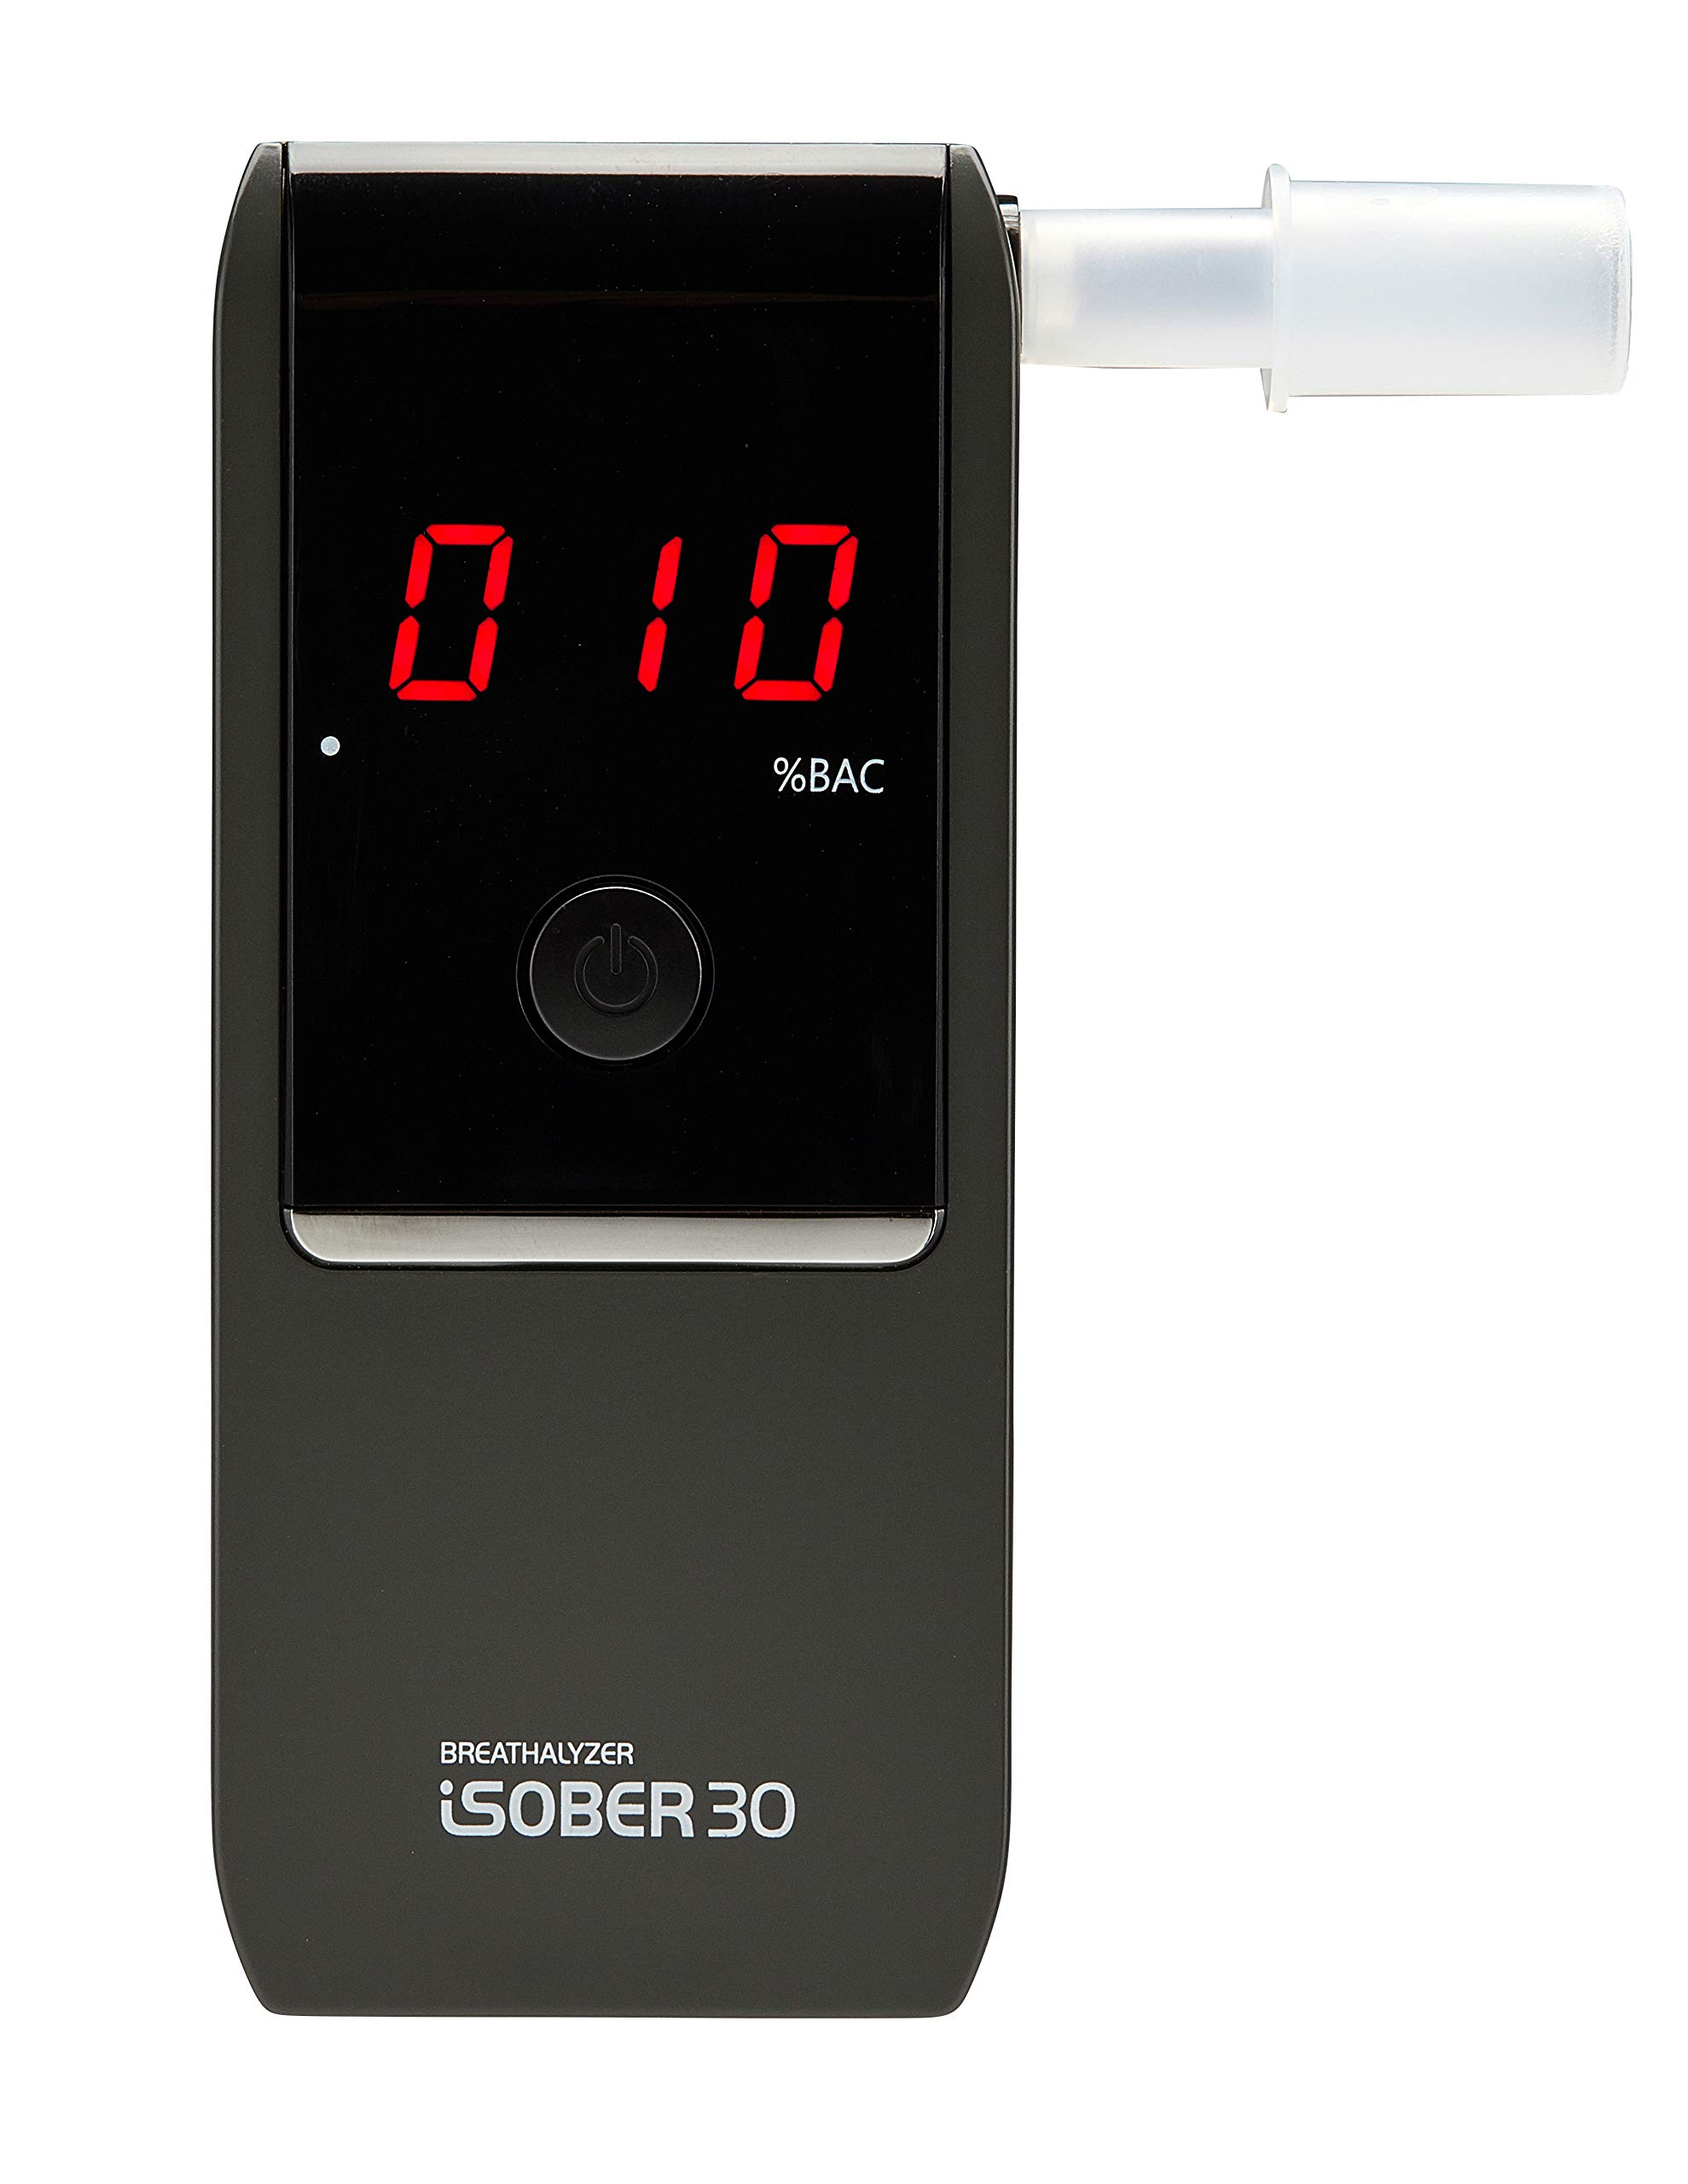 iSOBER 30 Breathalyzer | Best Accuracy Award Wining Portable Breath Alcohol Tester in EU | Cleared 33 Breathalyzer Test Requirements by Accredited Test Laboratory in Sweden for 12 Months